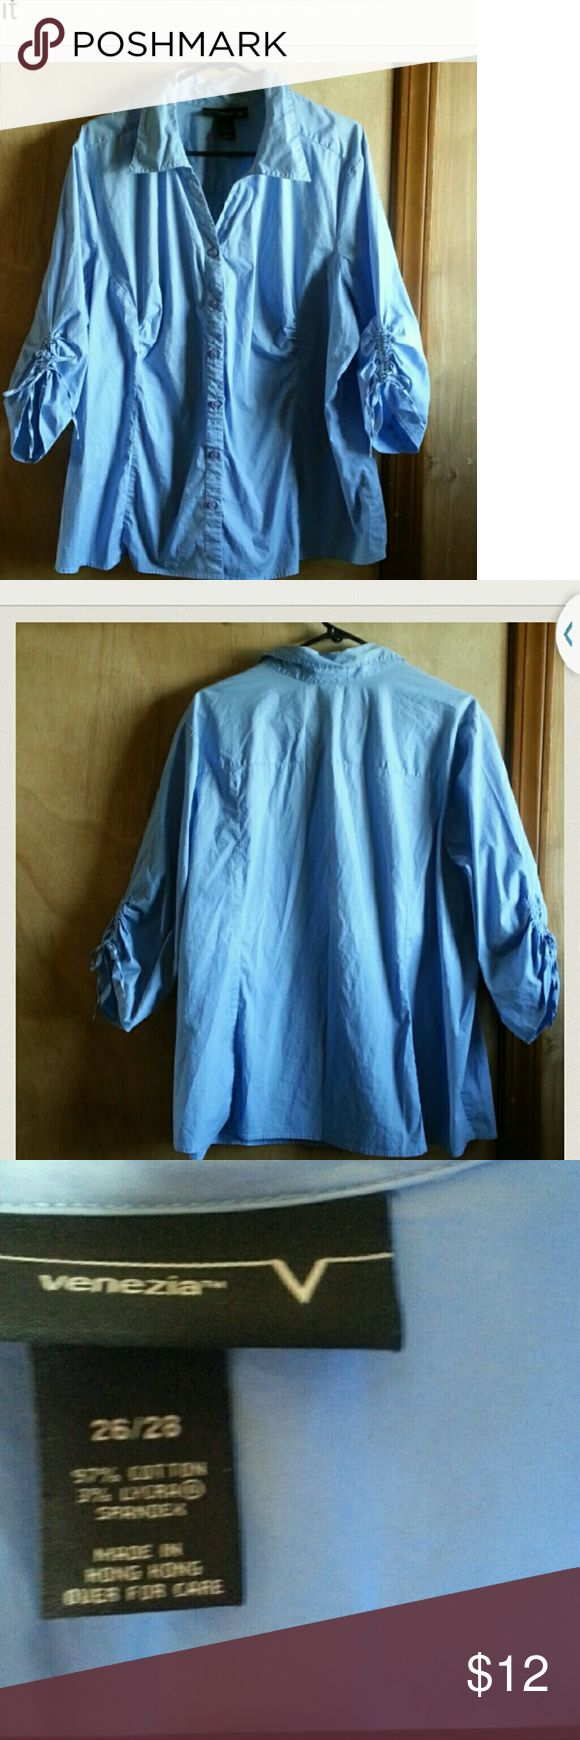 Baby blue button up blouseSize  26/28 Venezia  plus  size  blouse  great  condition Venezia Tops Button Down Shirts